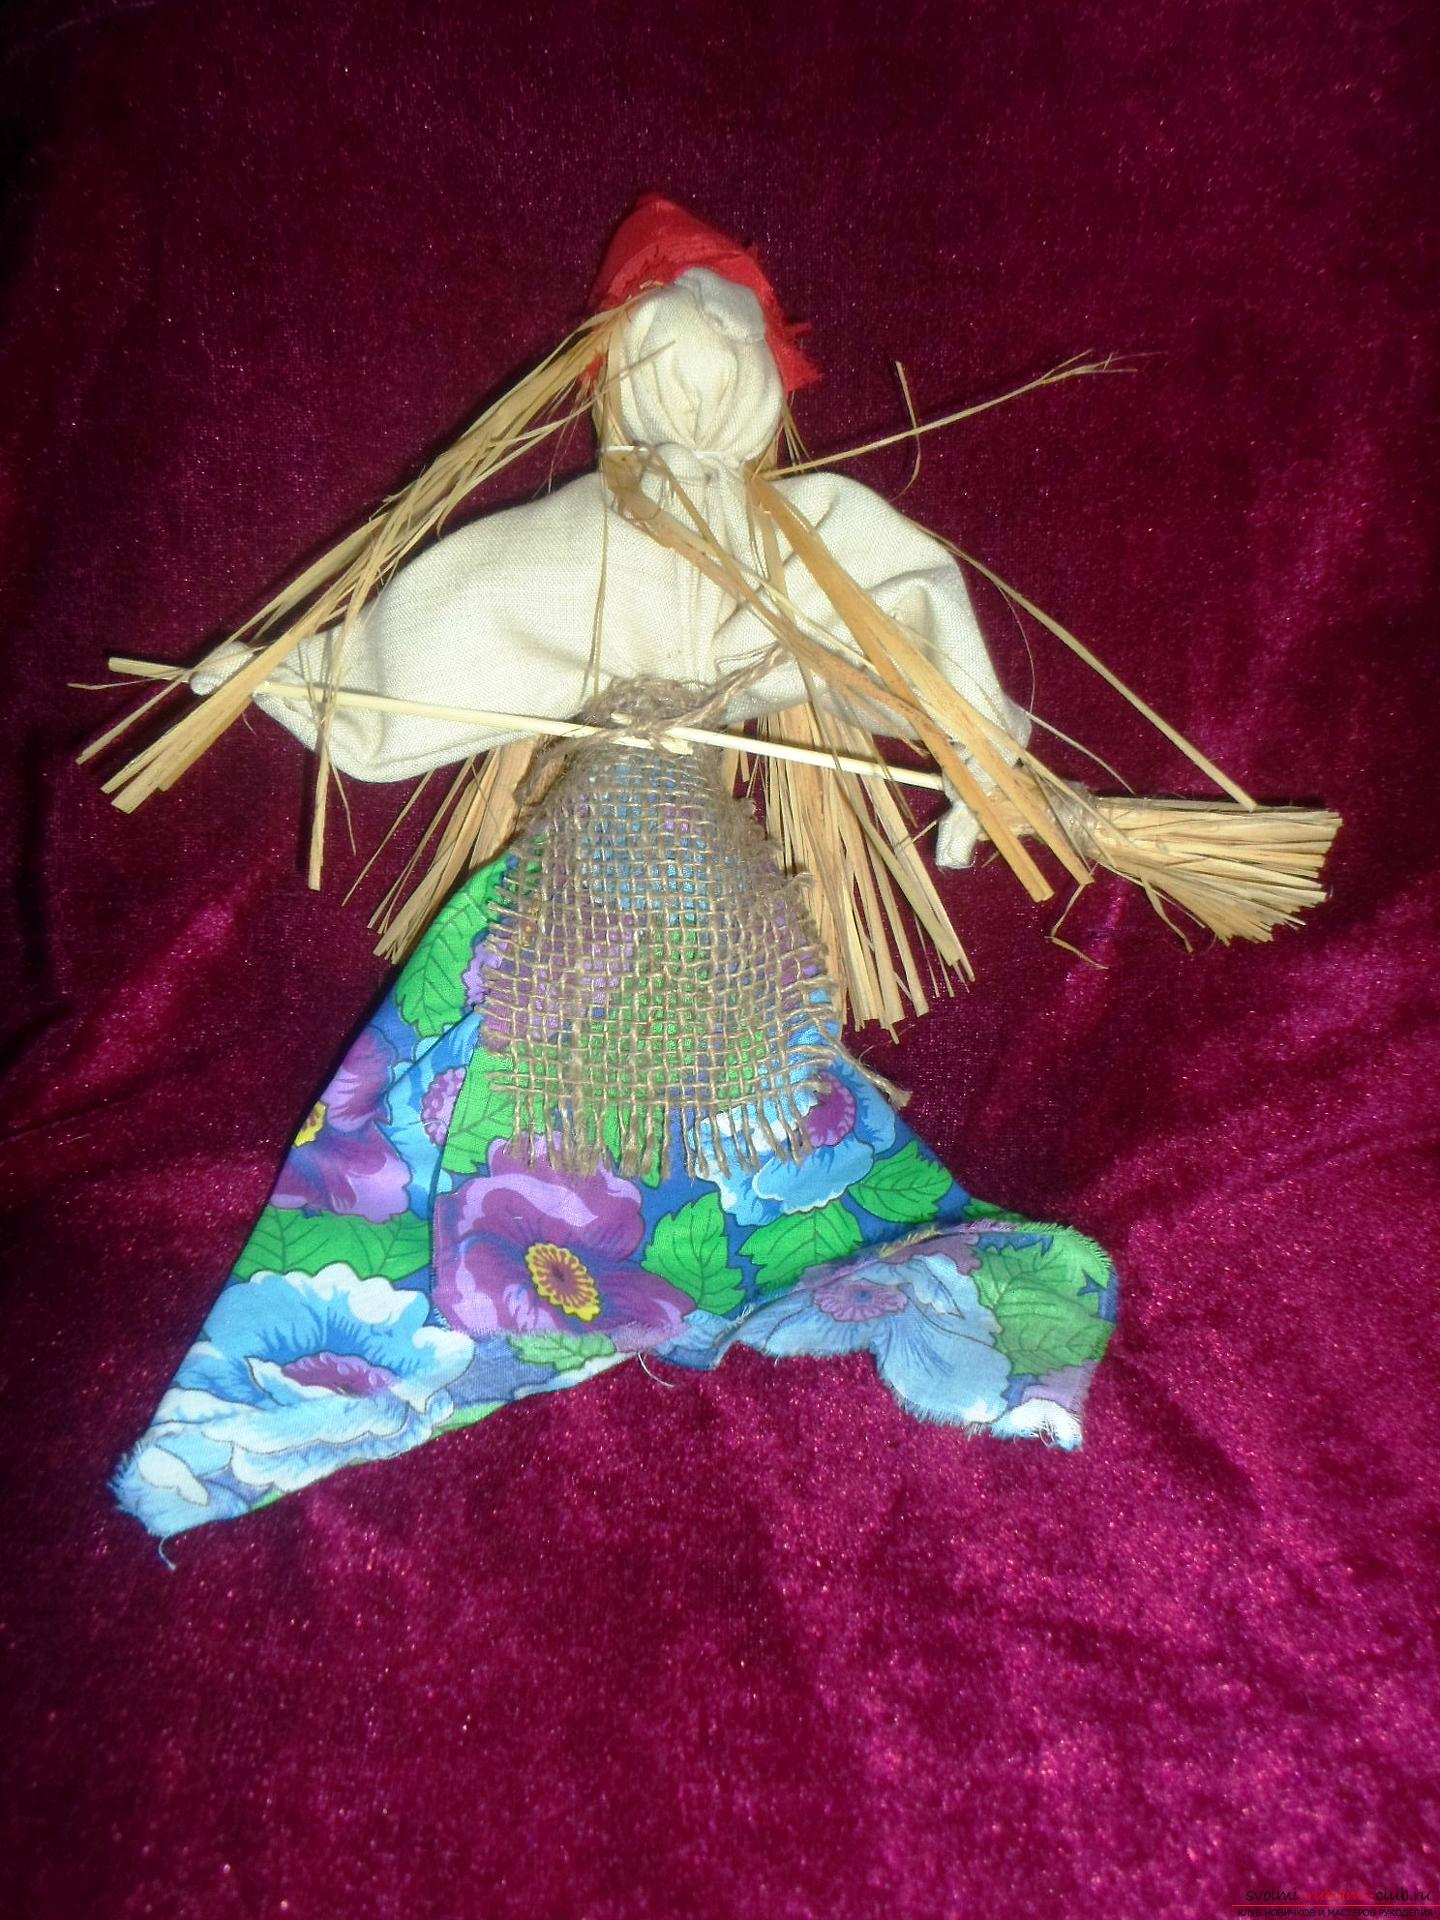 Slavic dolls, amulets for children's games and interior decorations in the Old Russian style. Photo №4